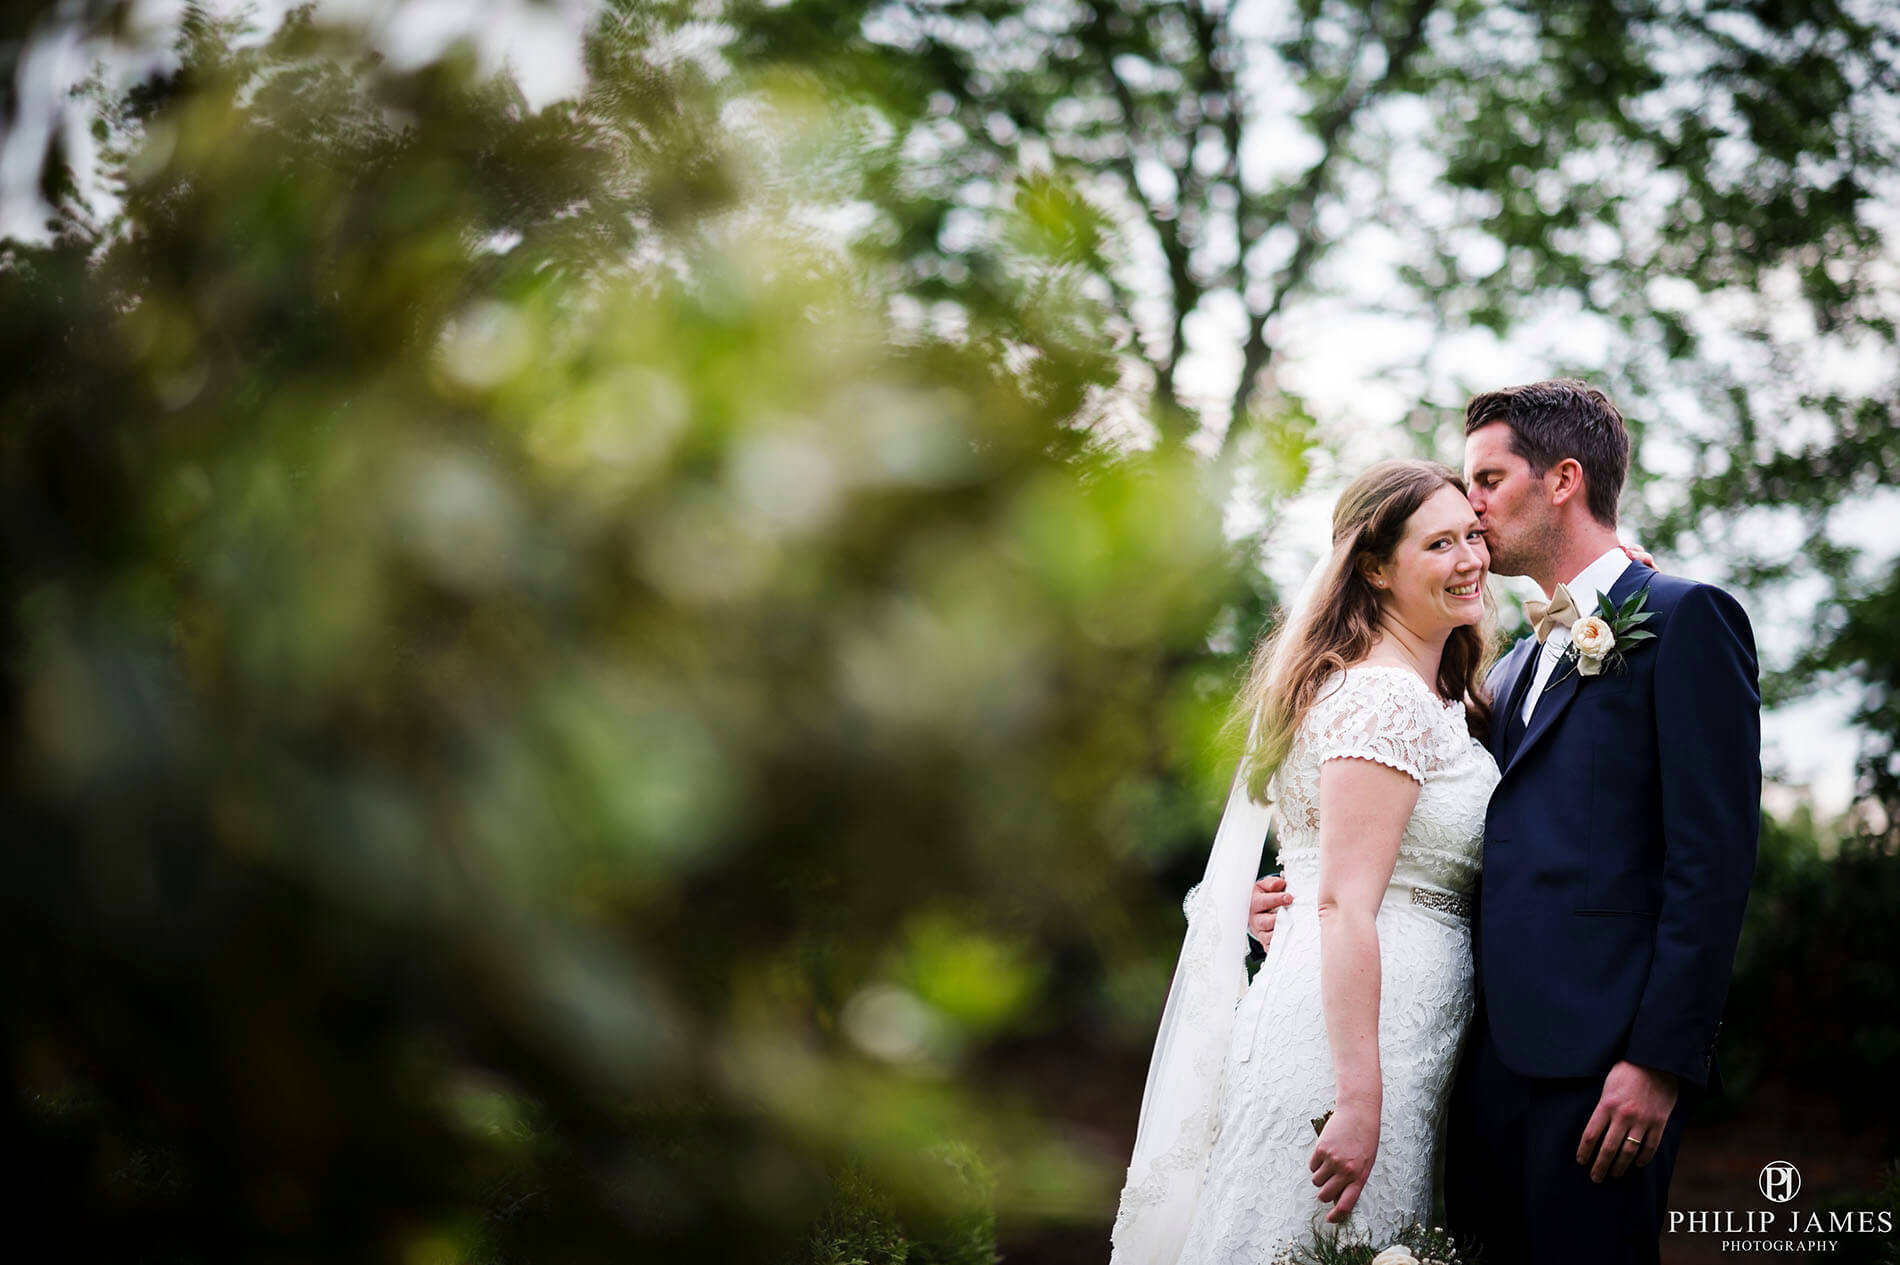 Nuthurst Grange Wedding Photographer - Philip James covers Birmingham, The West Midlands, Warwickshire and all over the UK. Wedding photography Birmingham is my passion